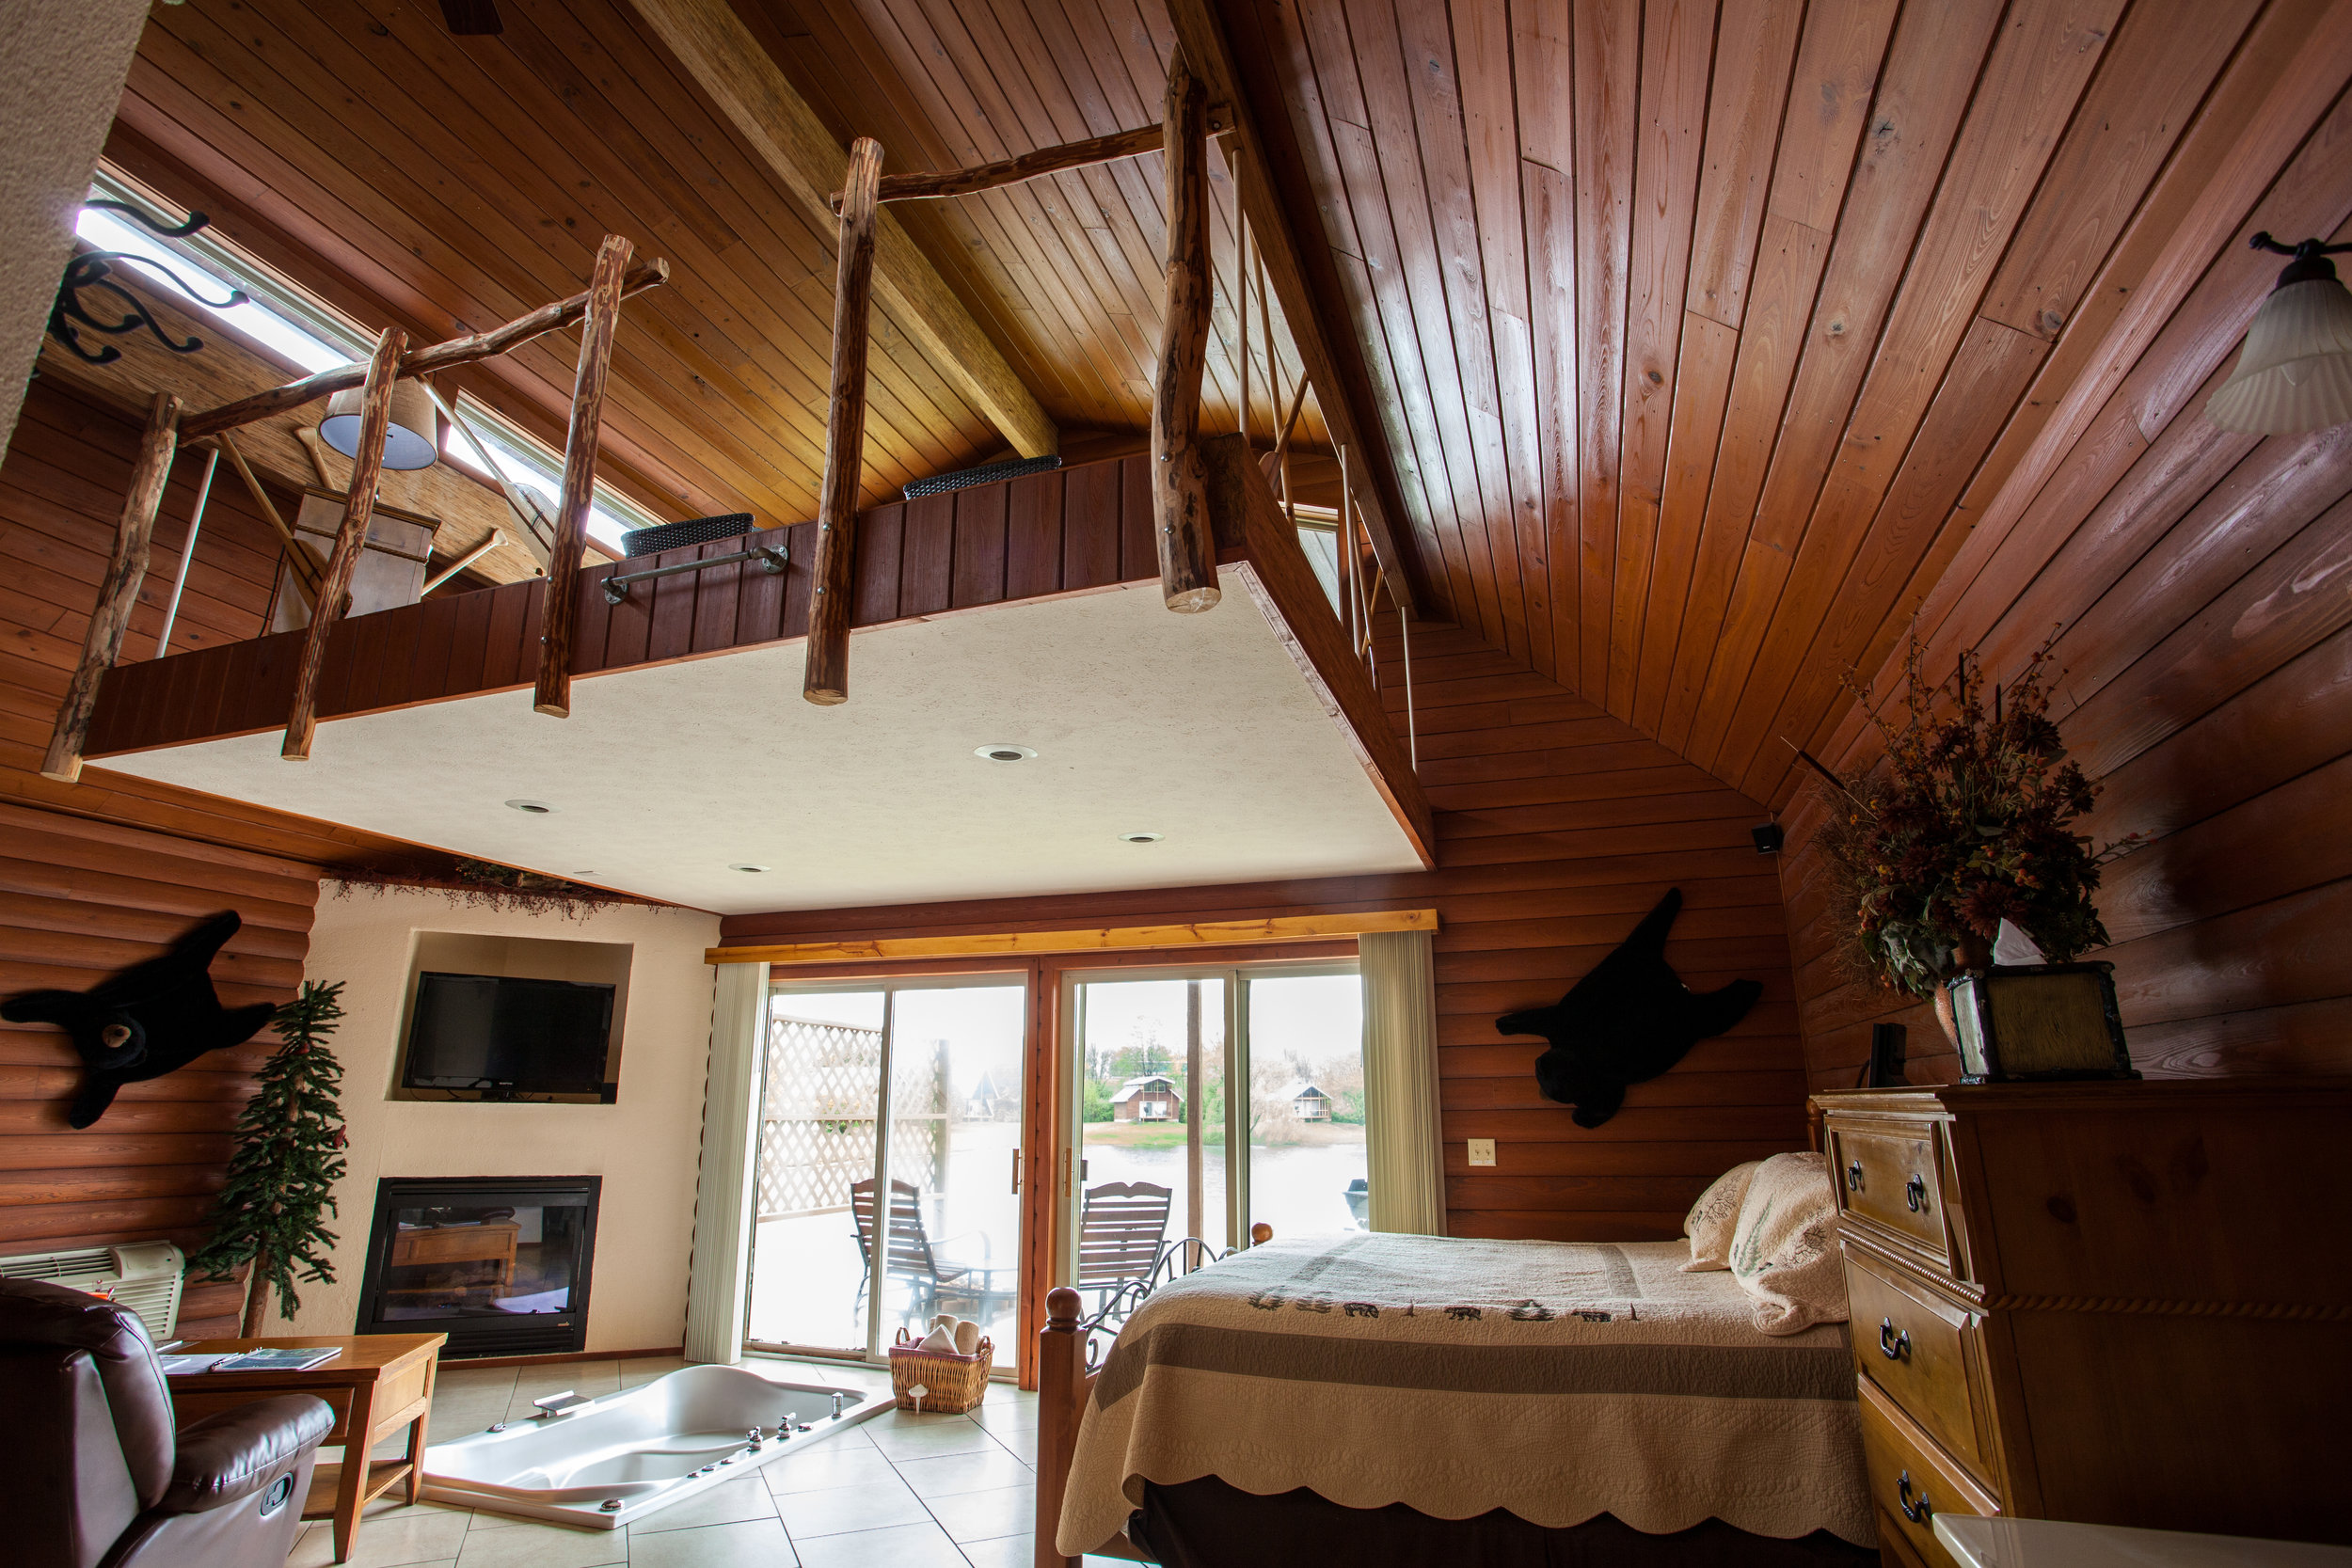 Interior picture of cabin with loft space.